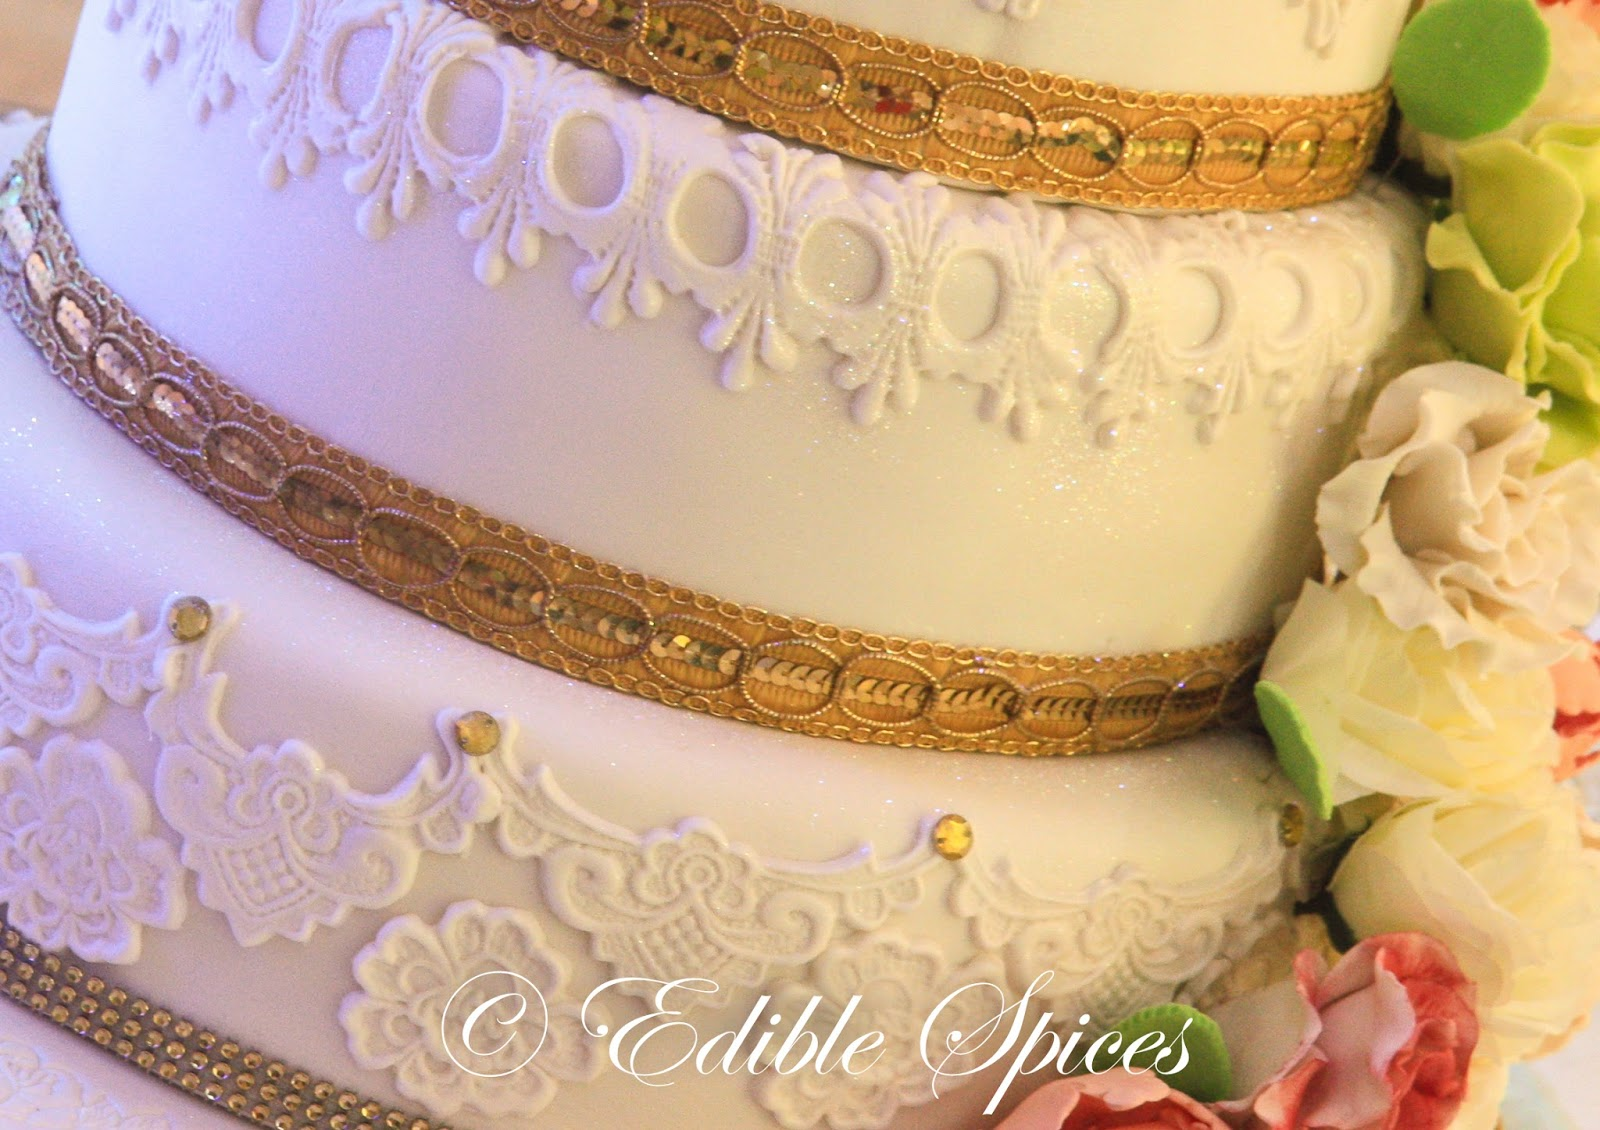 Edible Spices Bakery and Events